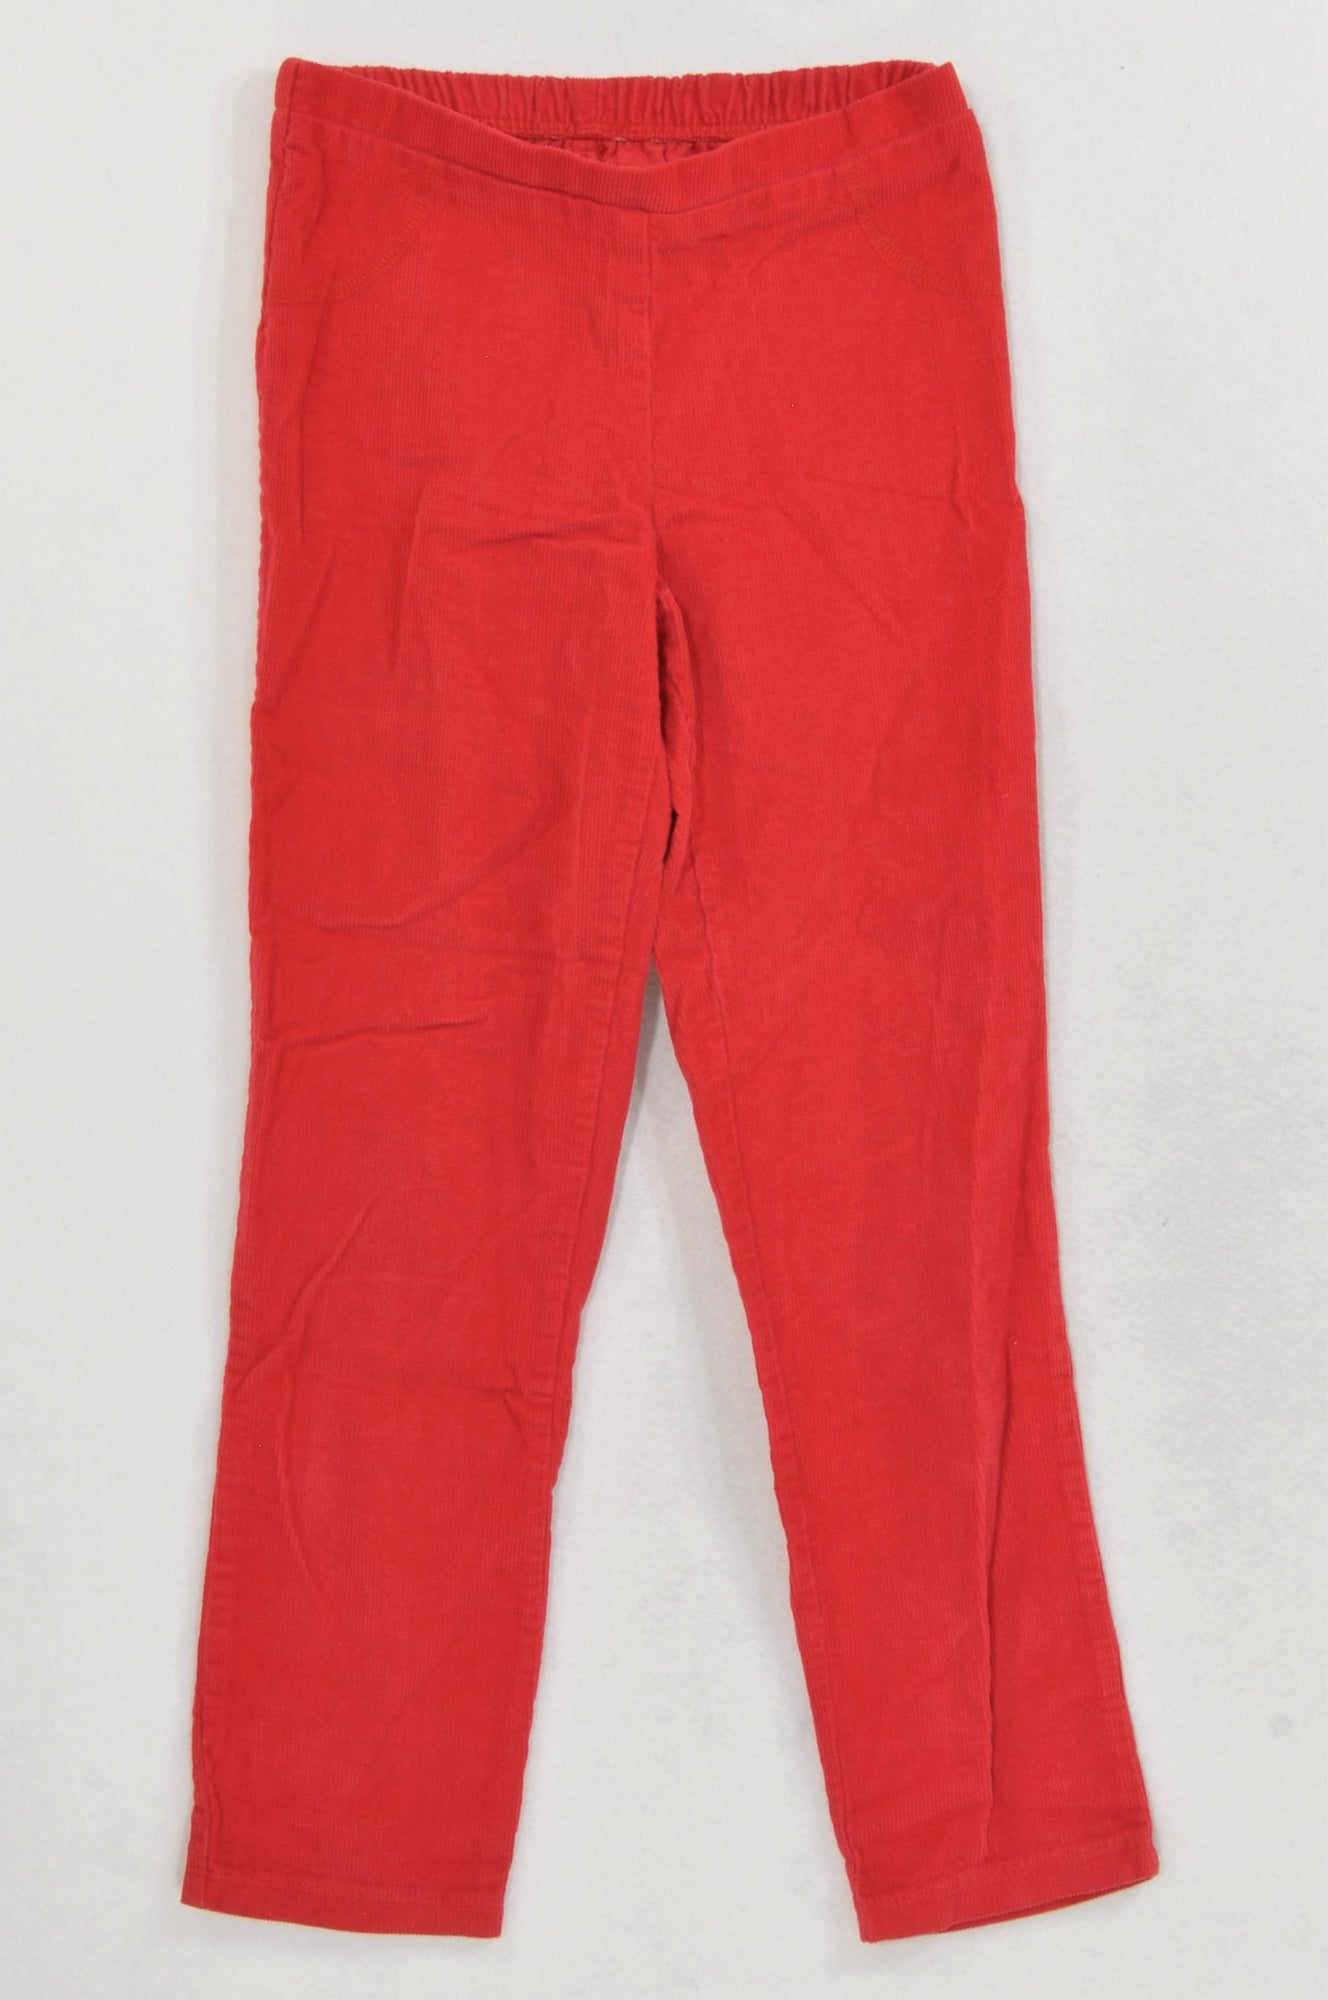 Woolworths Basic Red Corduroy Pants Girls 7-8 years